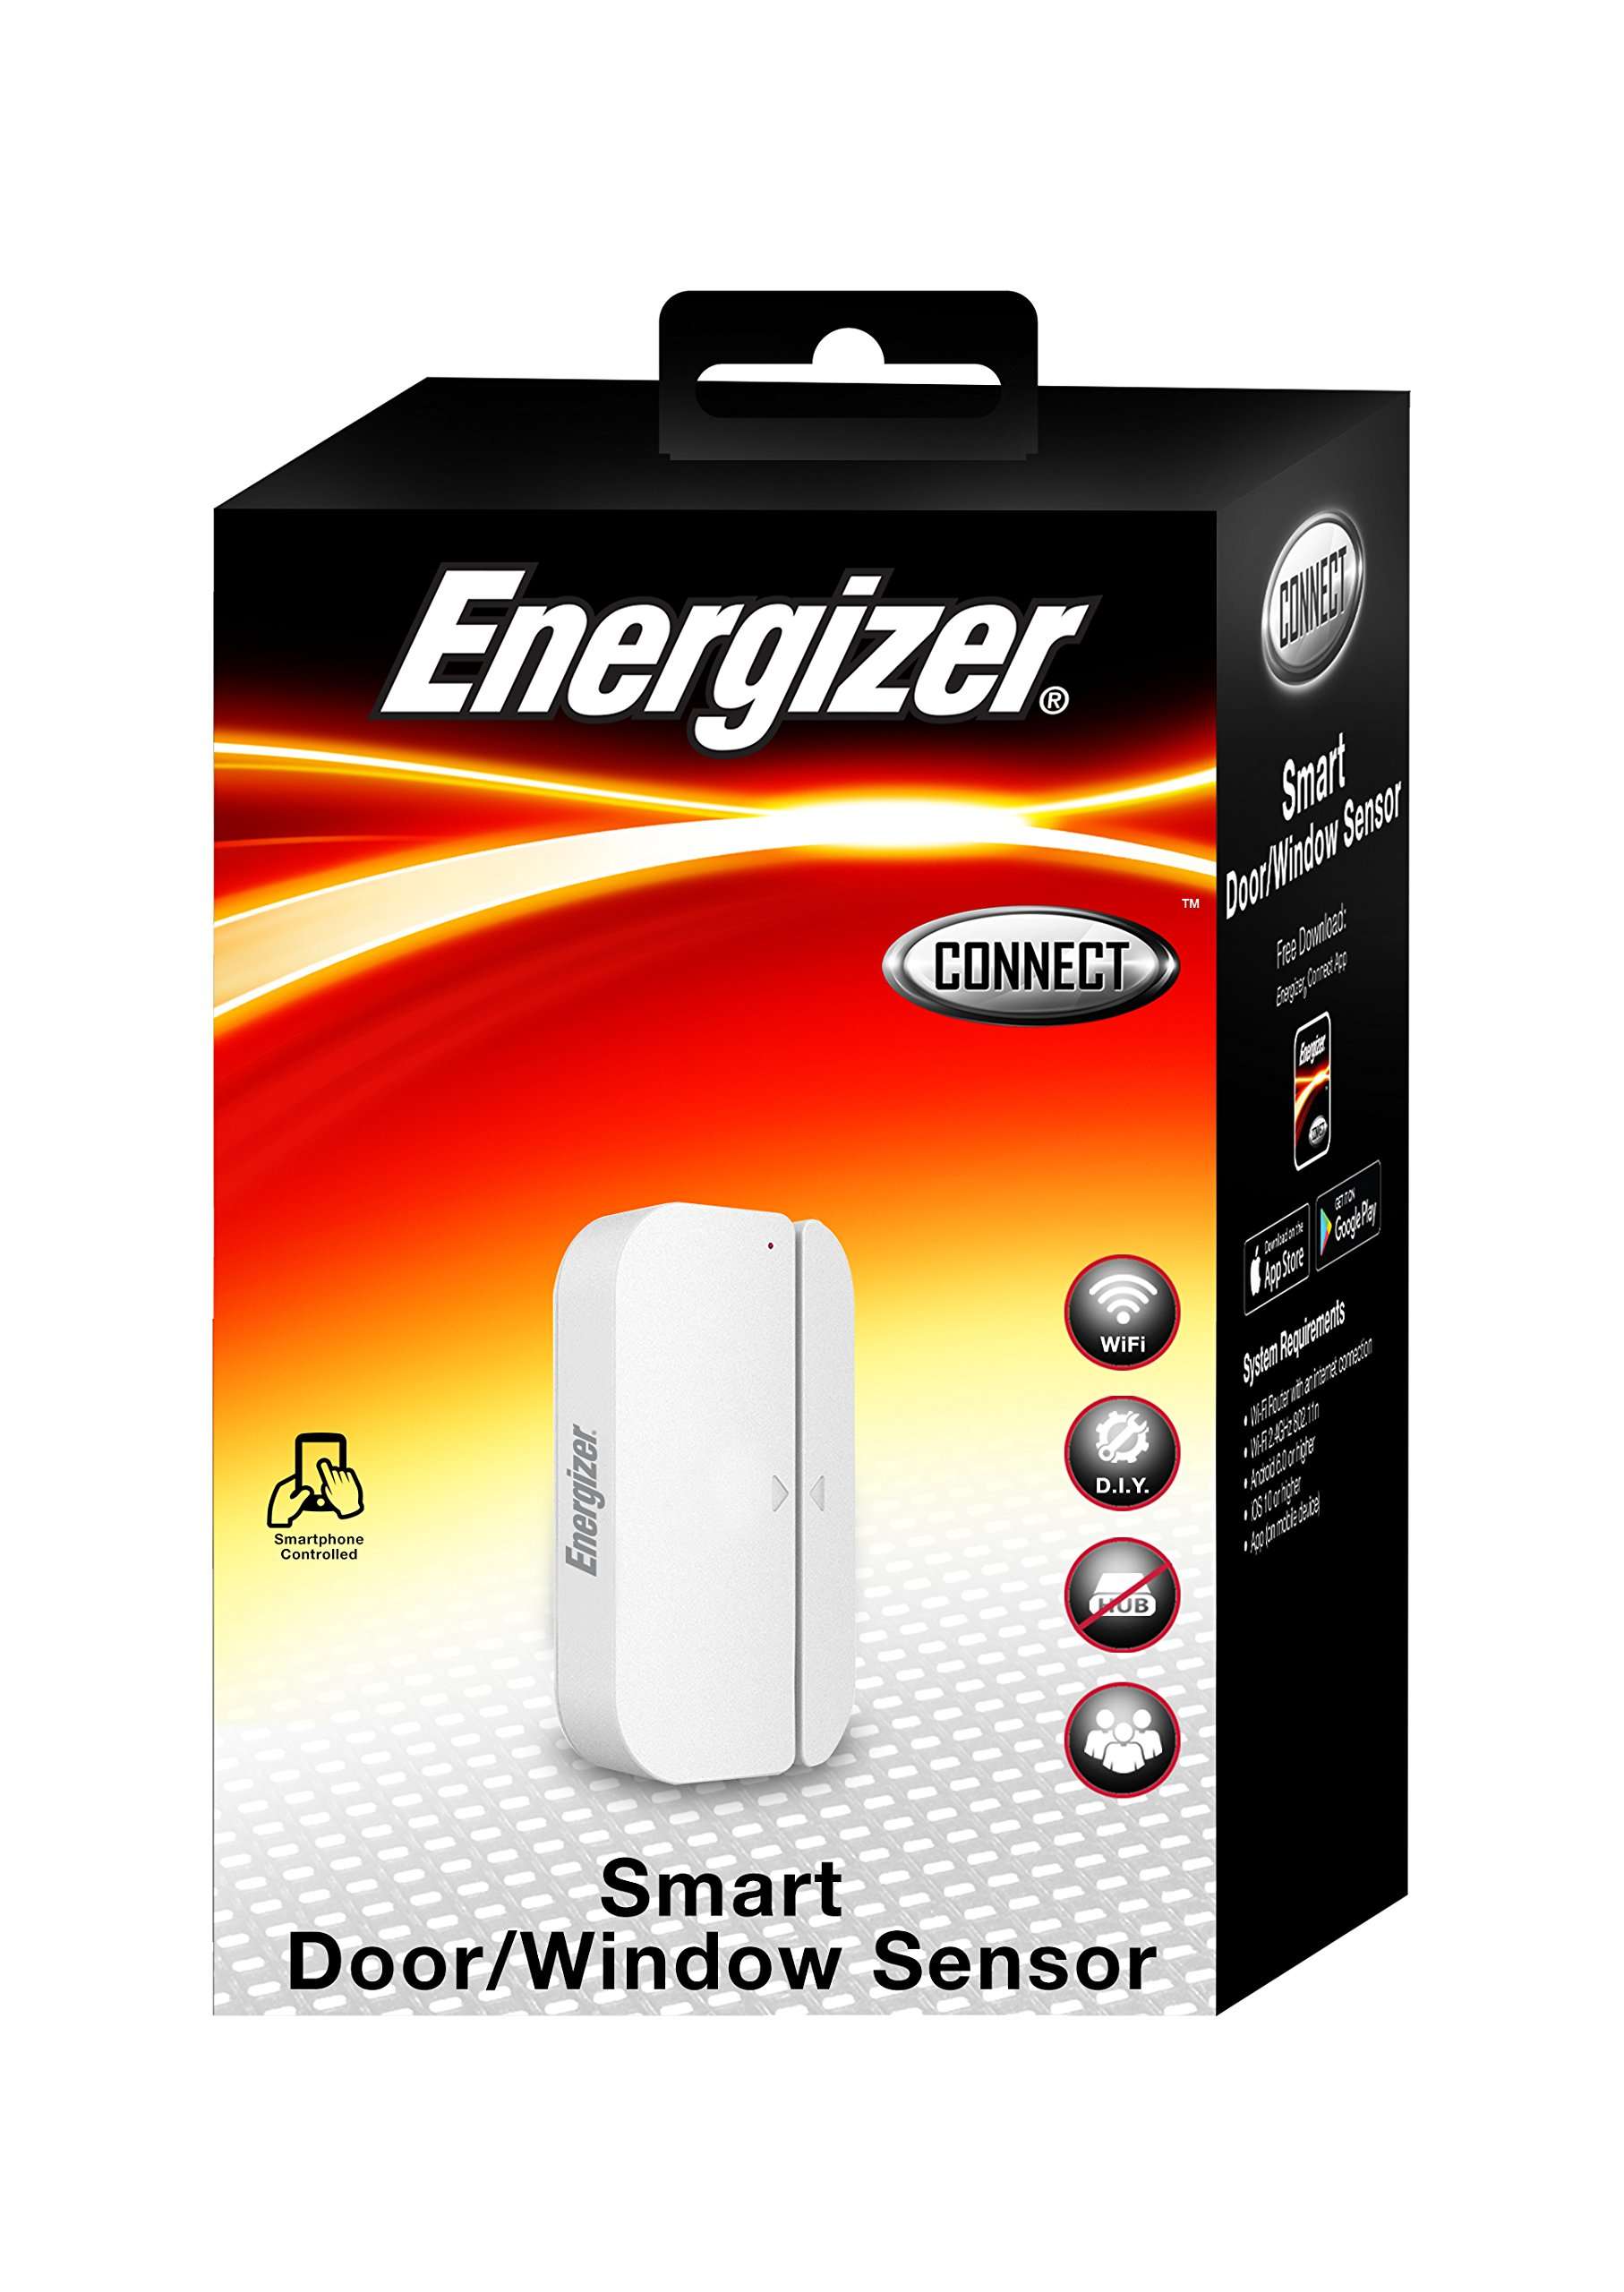 Energizer Connect WI-FI Smart Door/Window Sensor APP Included IOS & Android